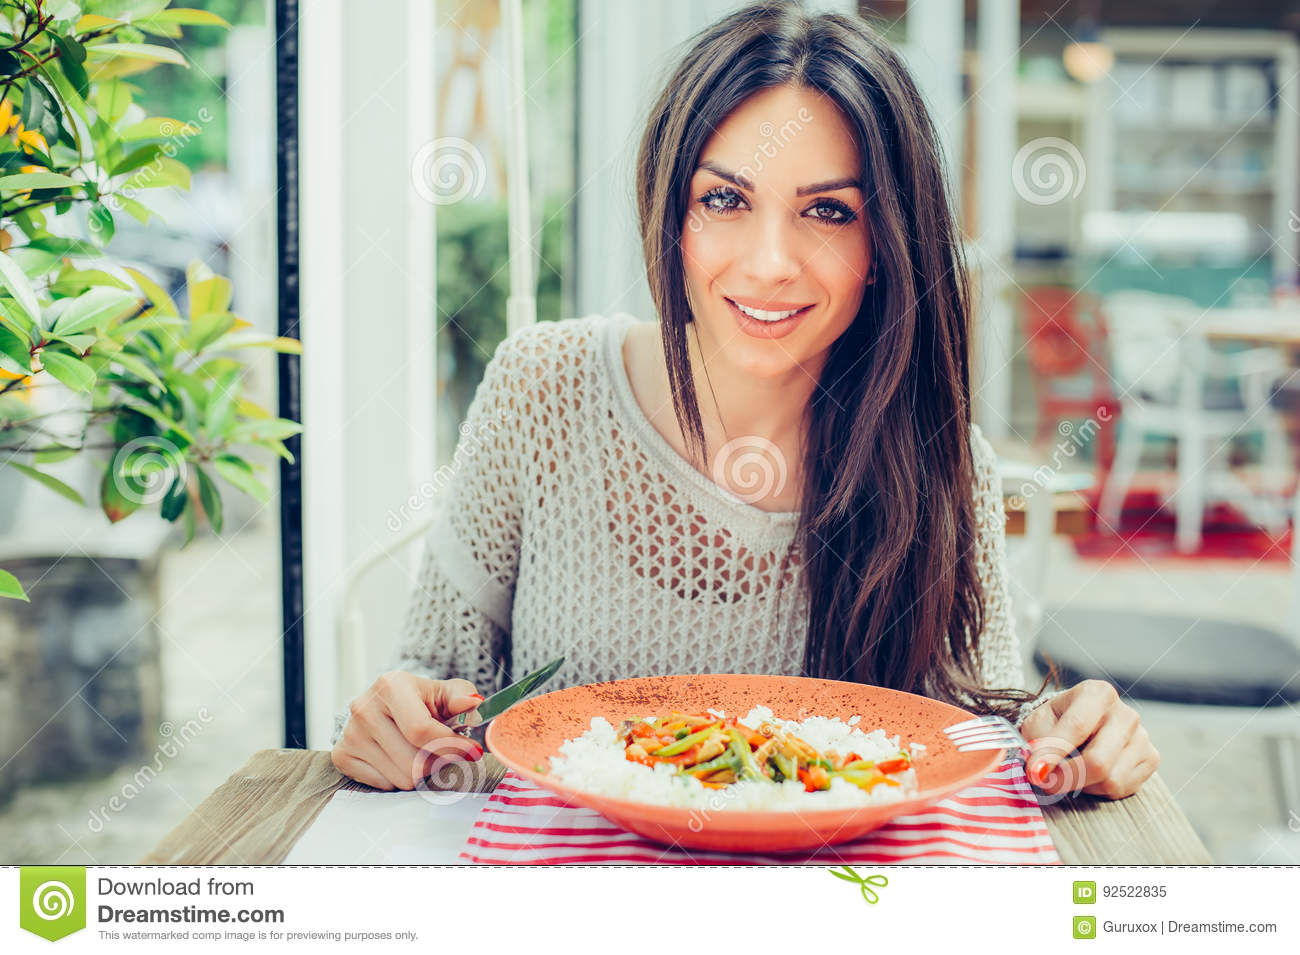 Young woman eating chinese food in a restaurant, having her lunch break